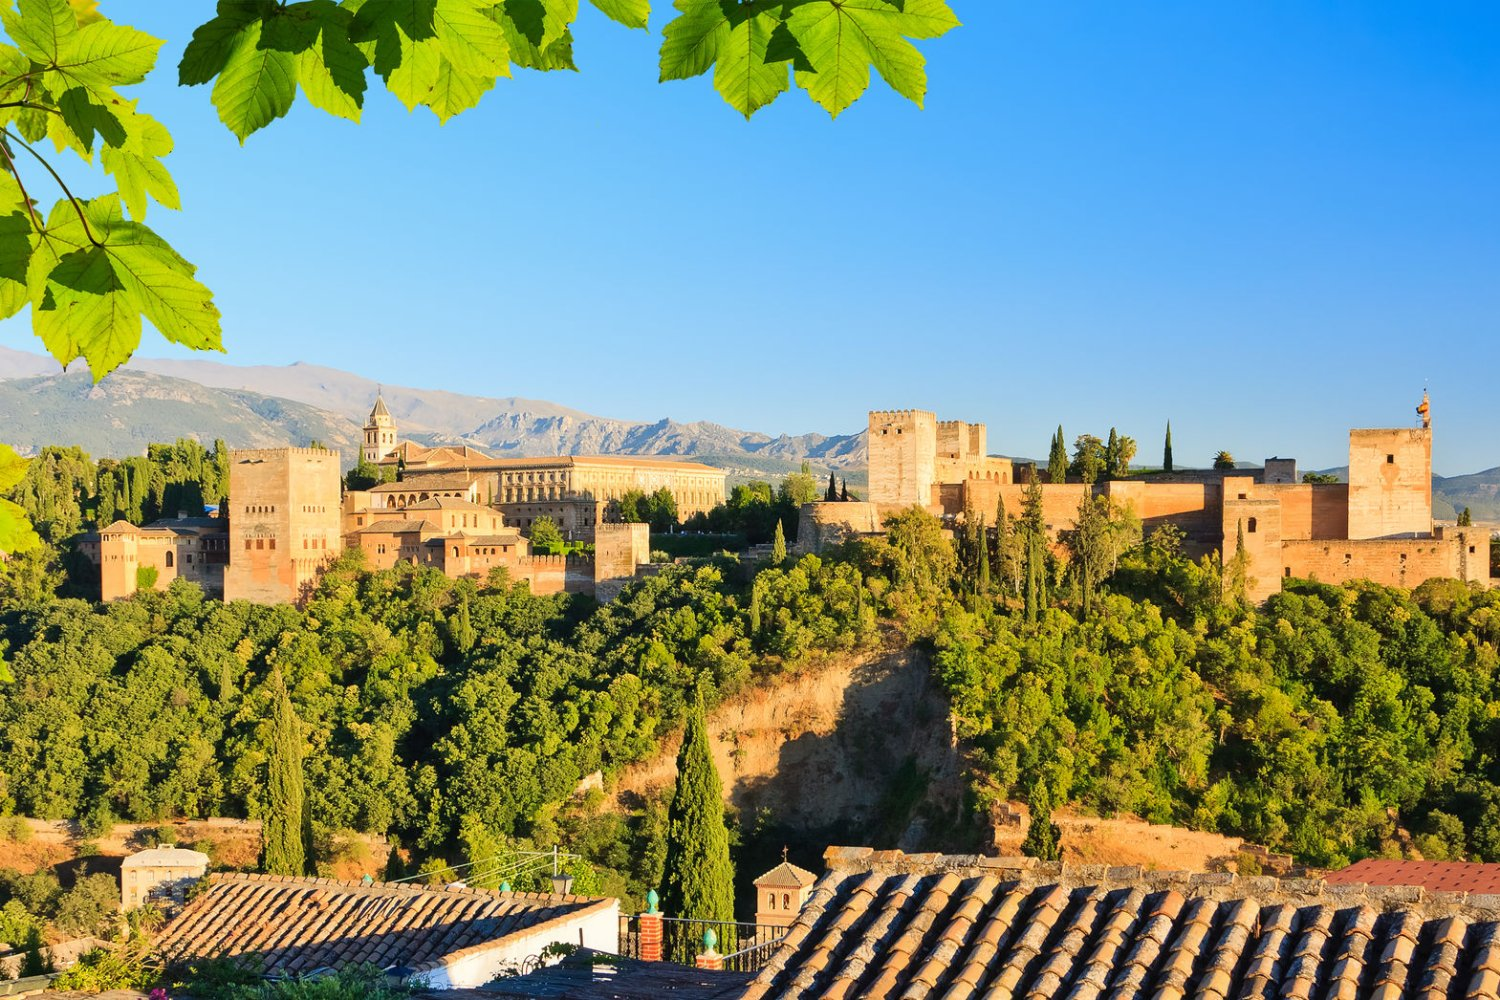 Alhambra, historical sites in Spain, Granada